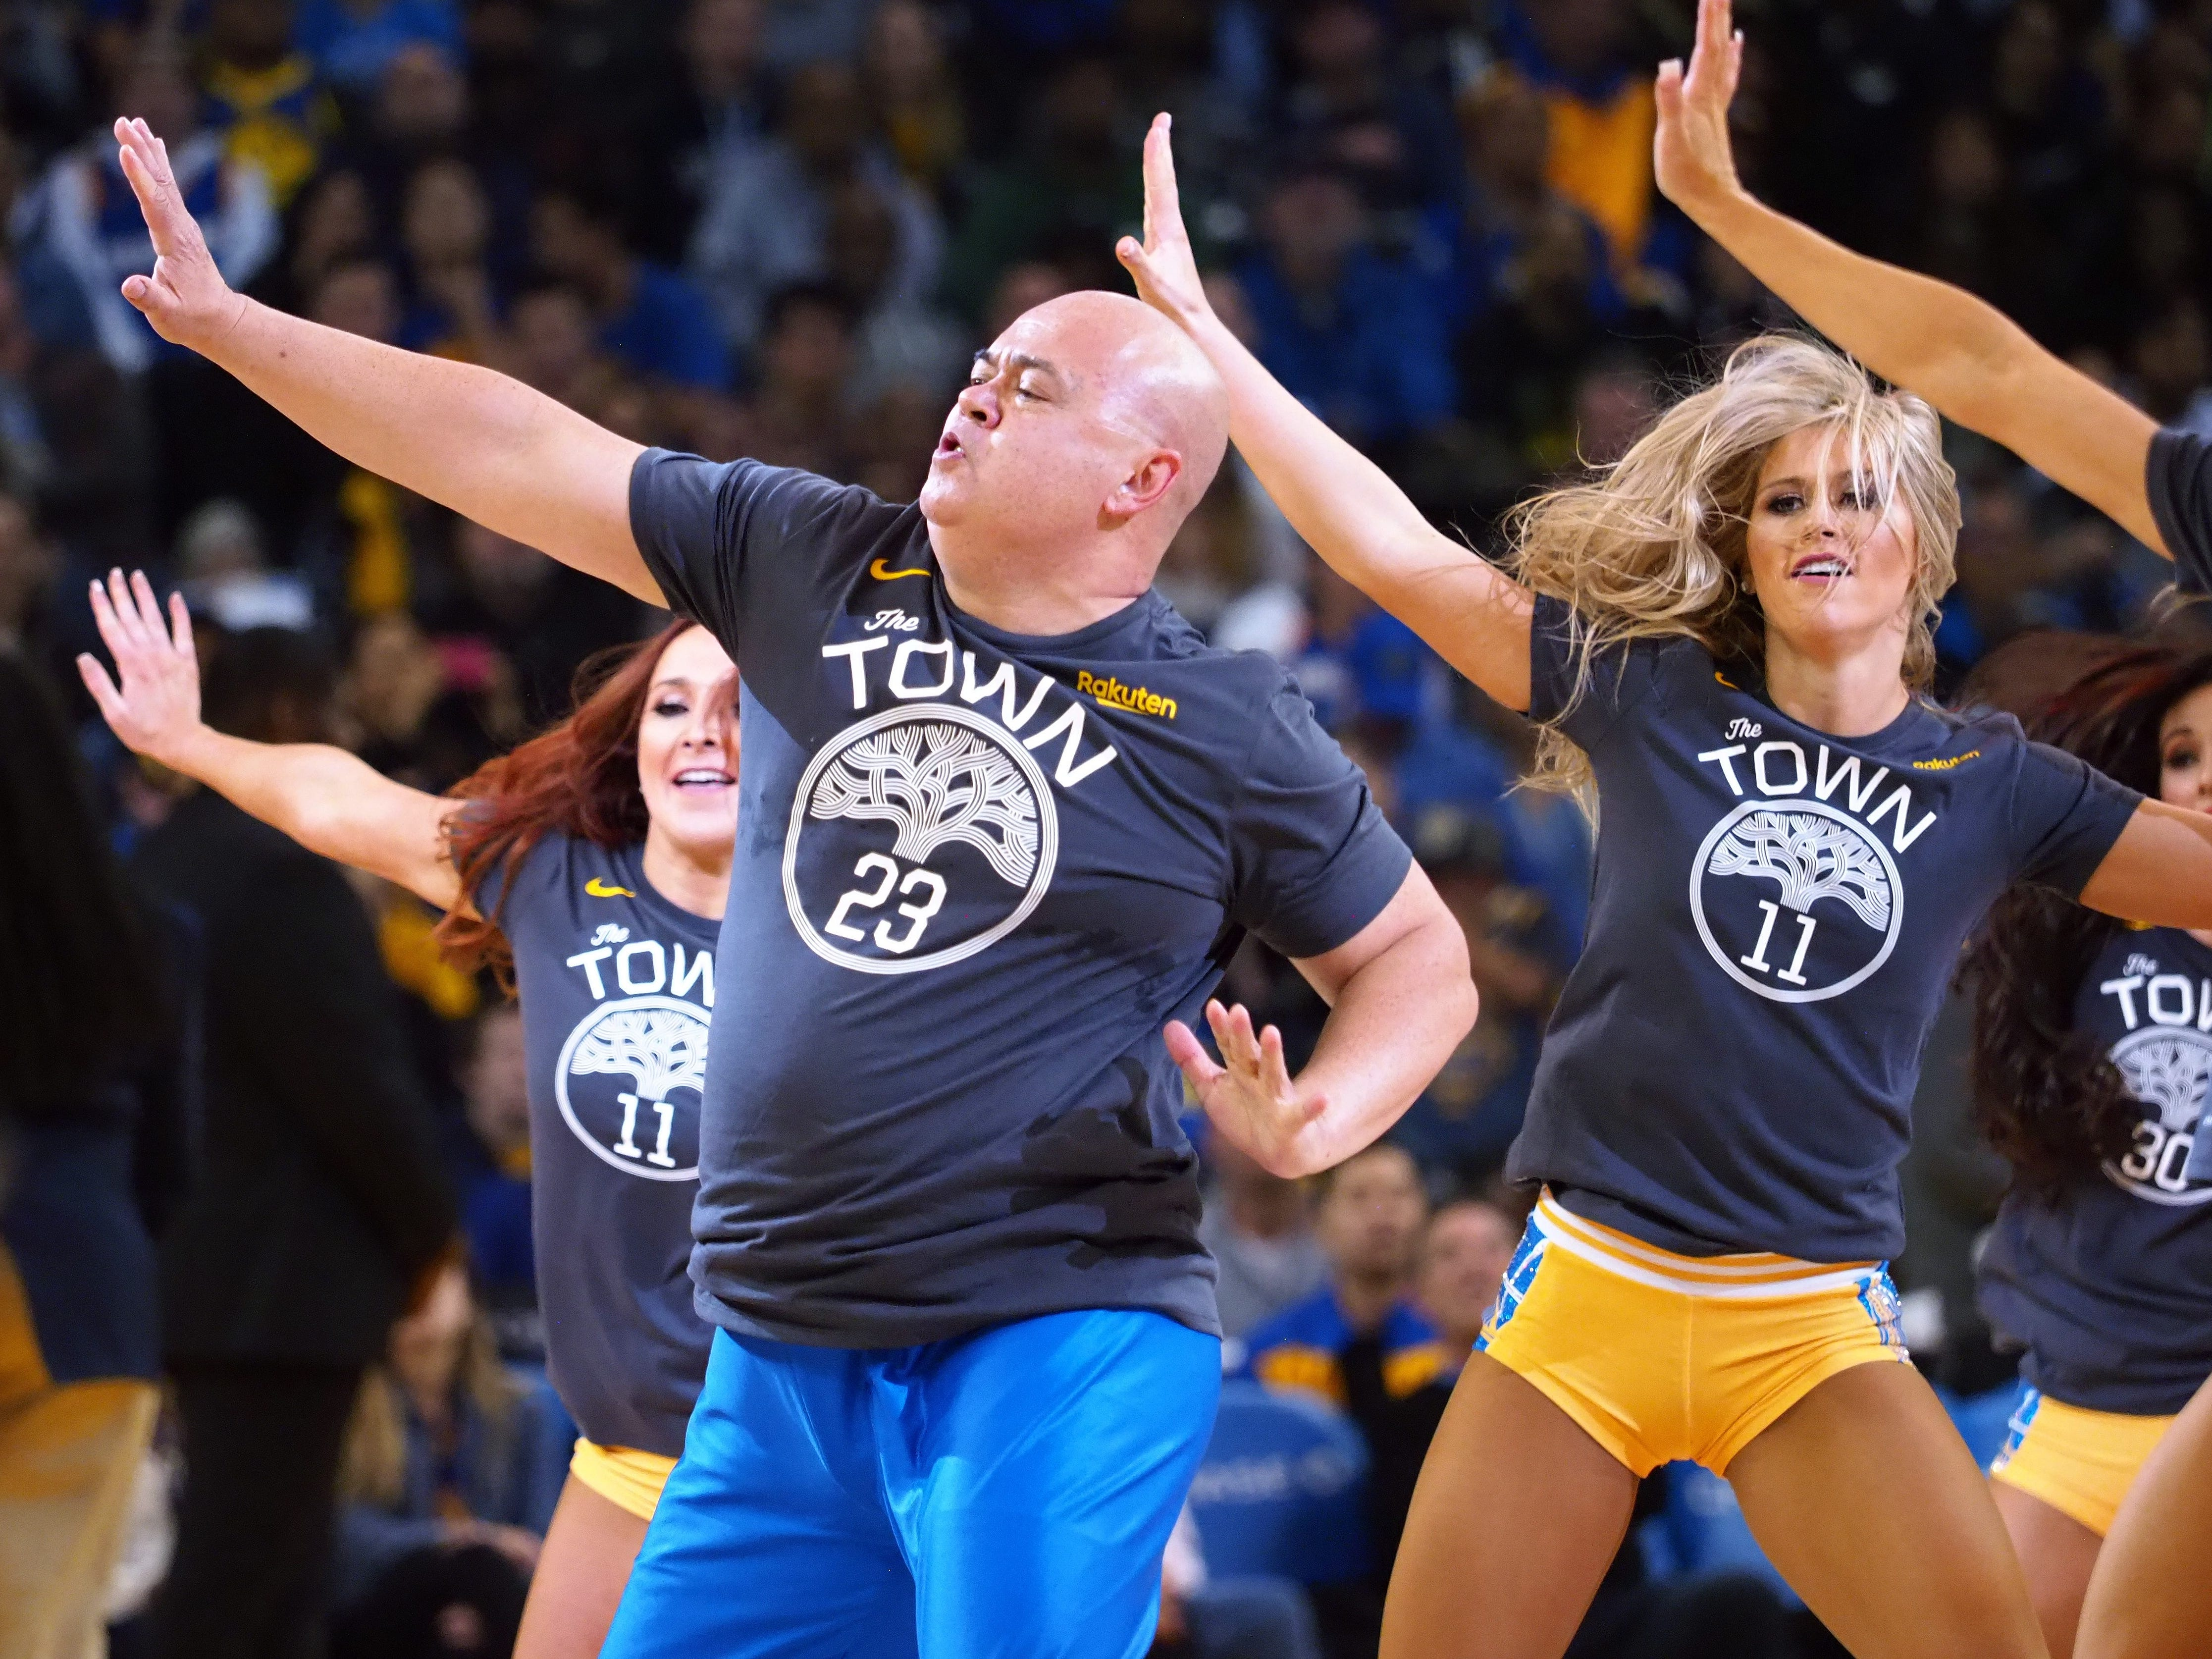 Nov. 23: Warriors dancers perform during a break in the action against the Trail Blazers.